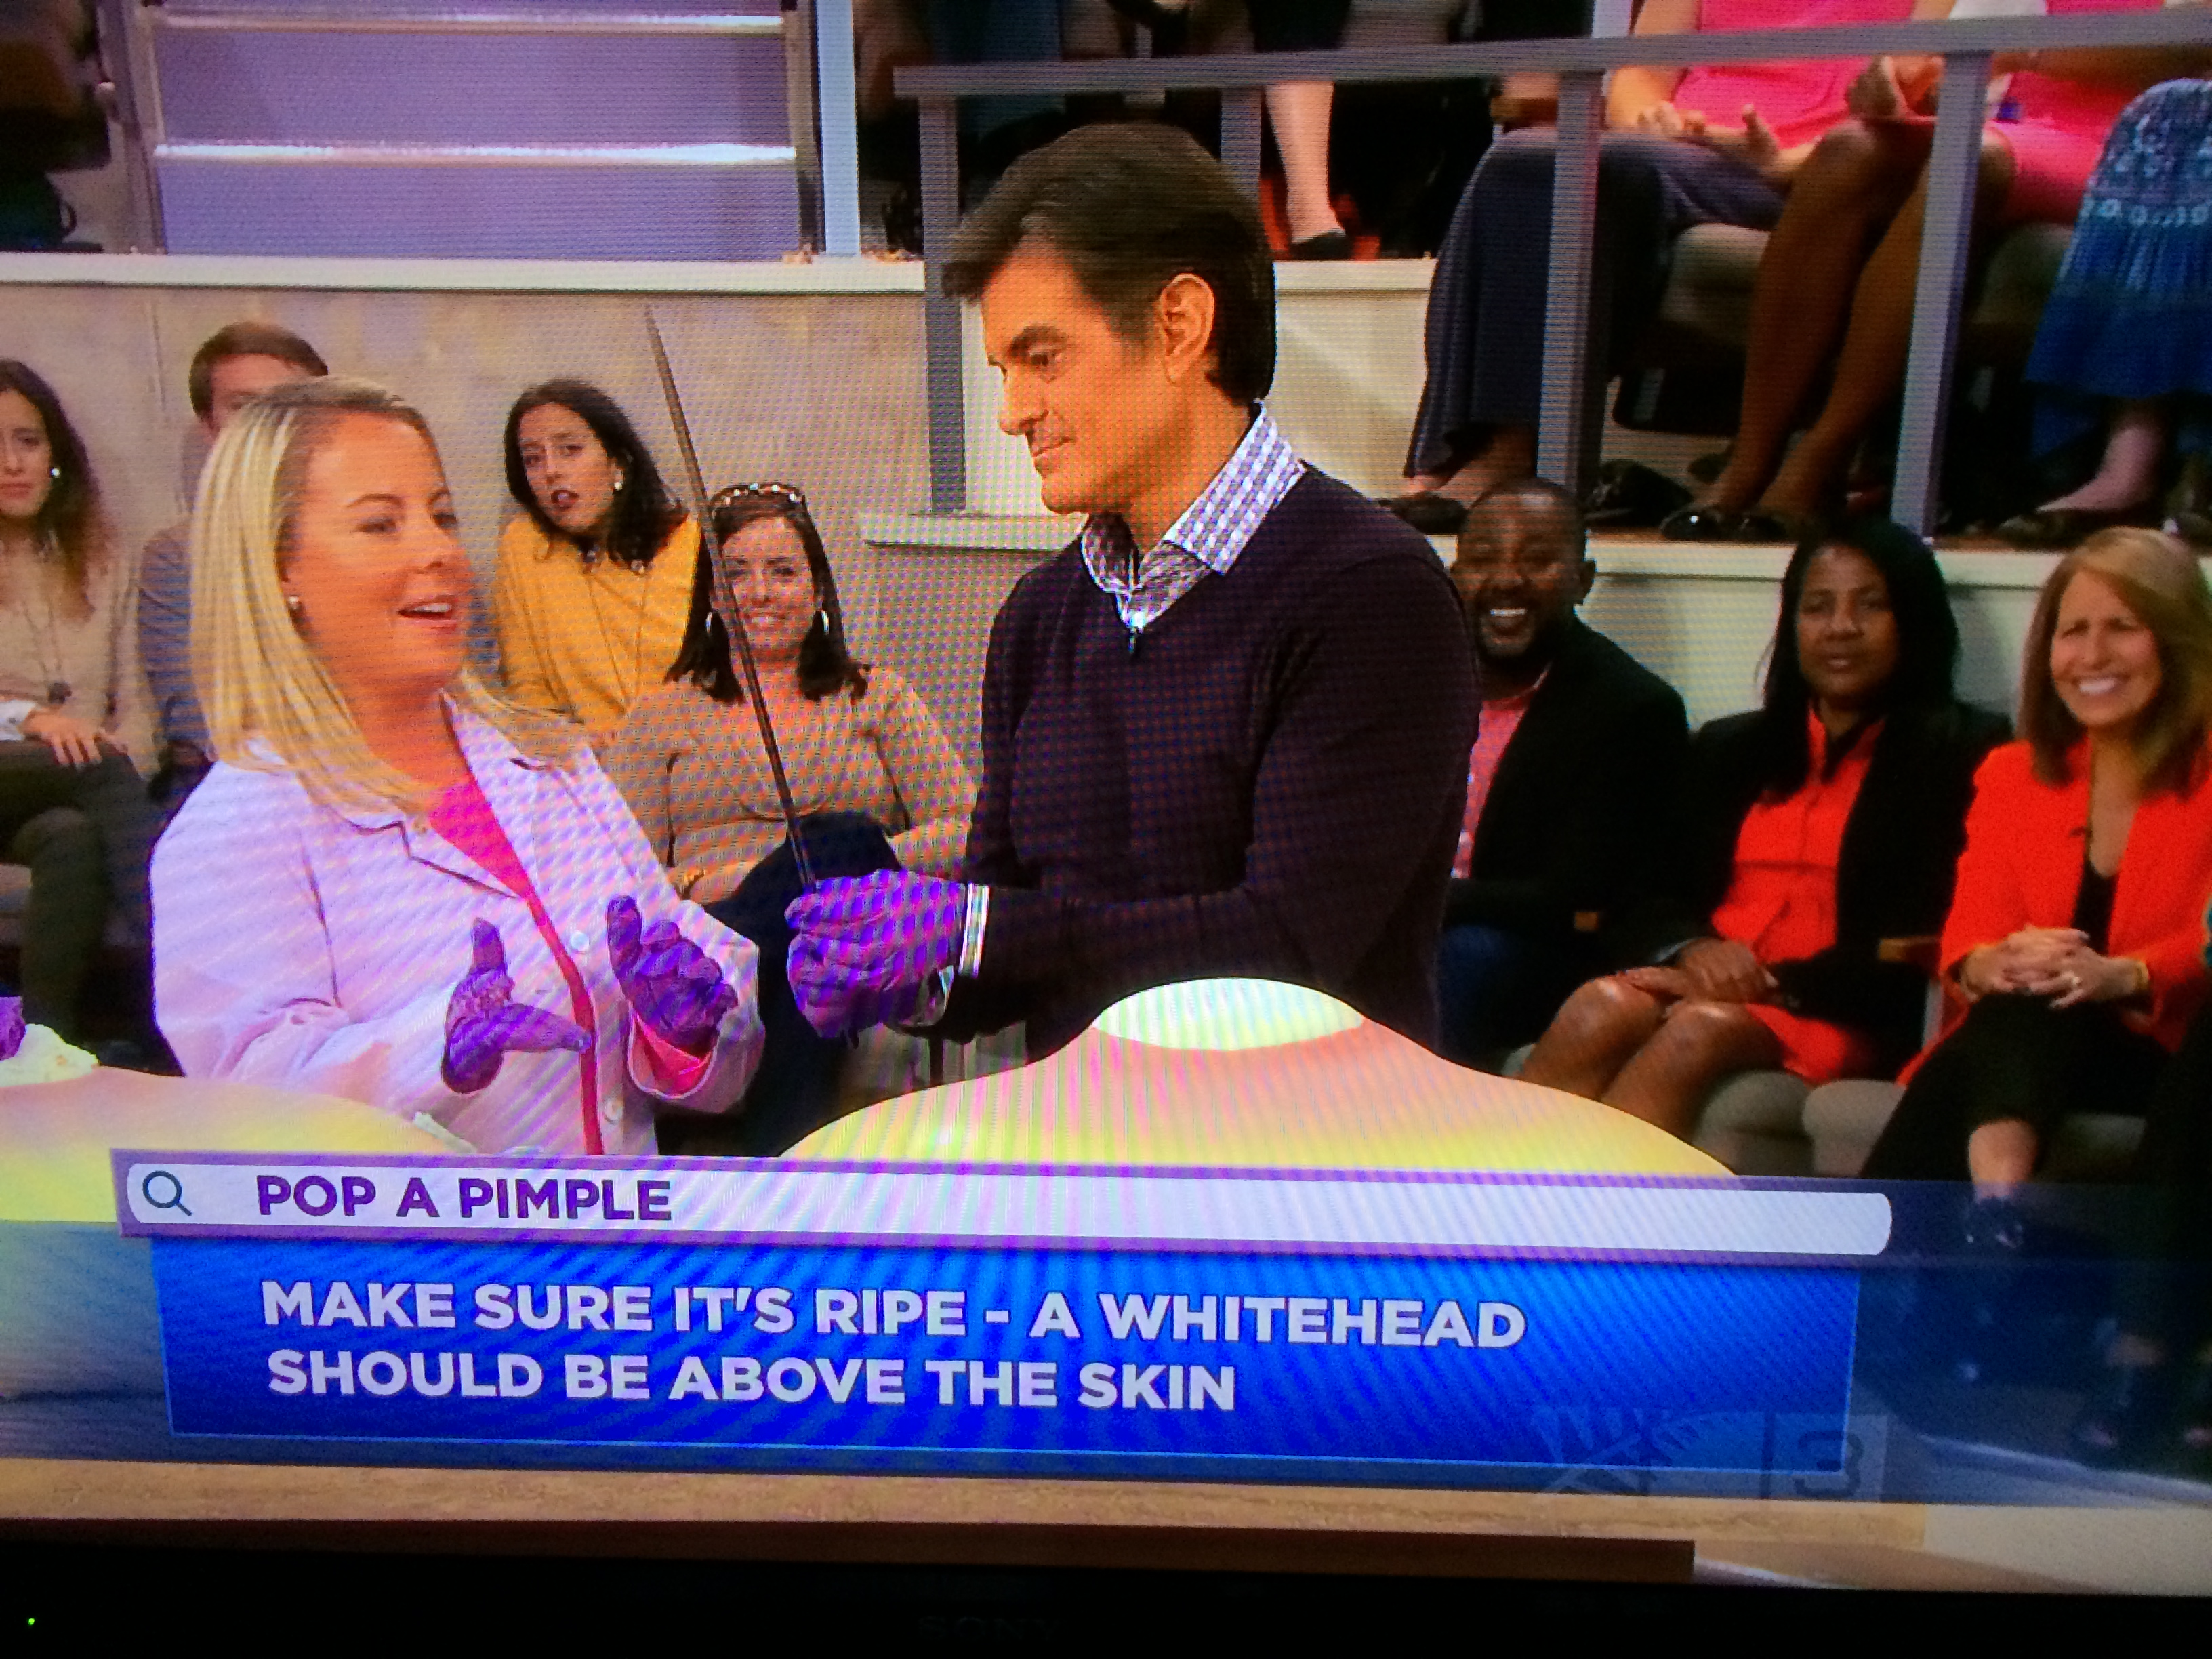 Dr Oz has an enormous zit